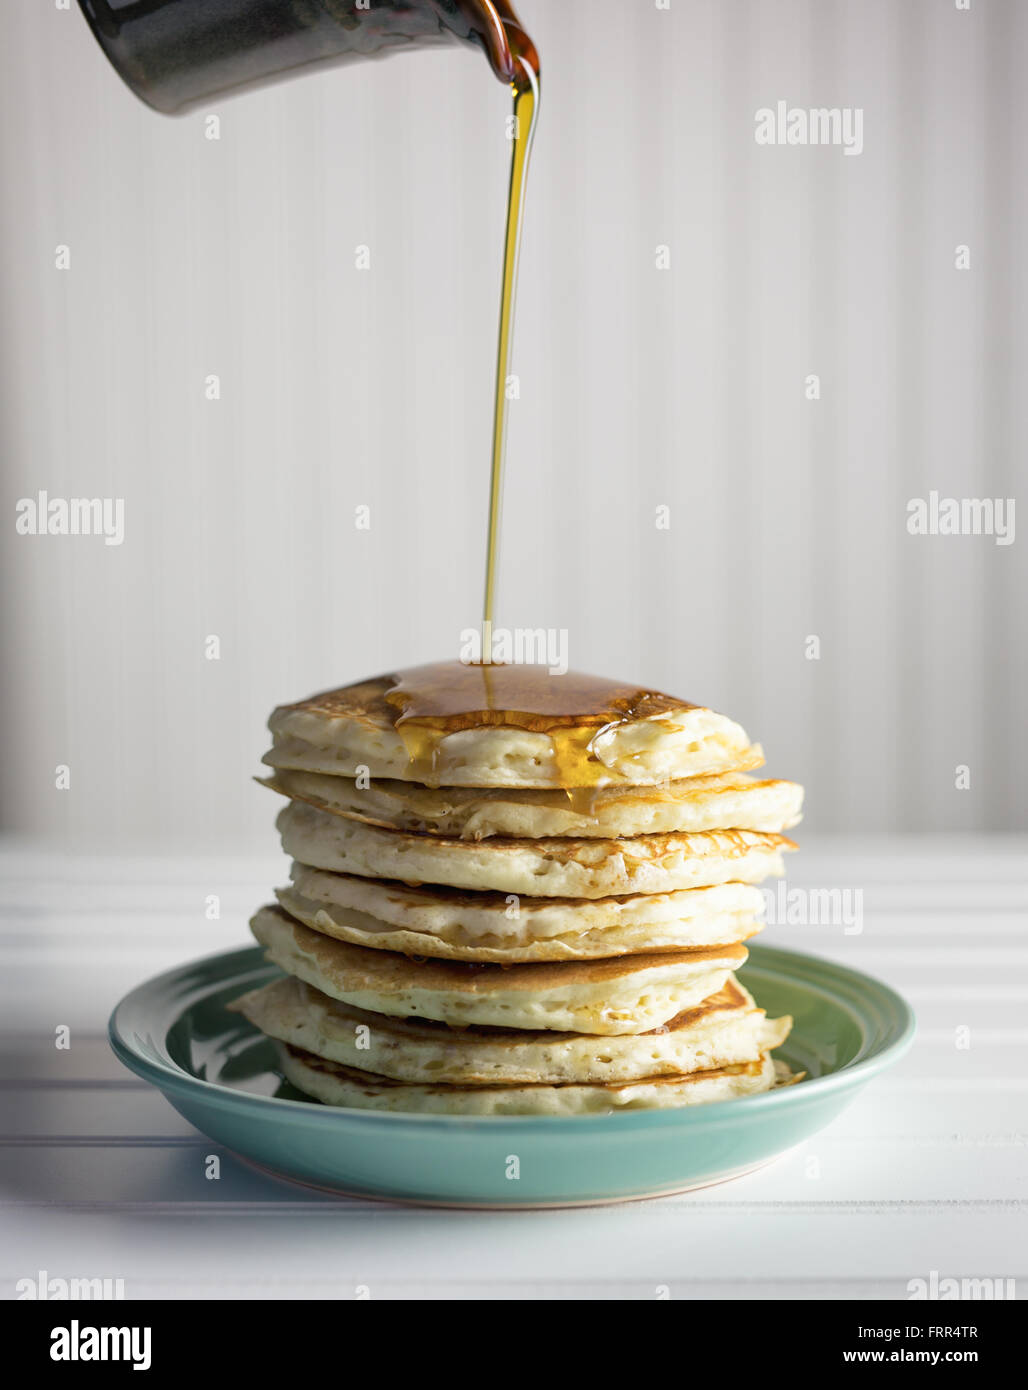 Maples syrup being poured over a tall stack of pancakes. - Stock Image